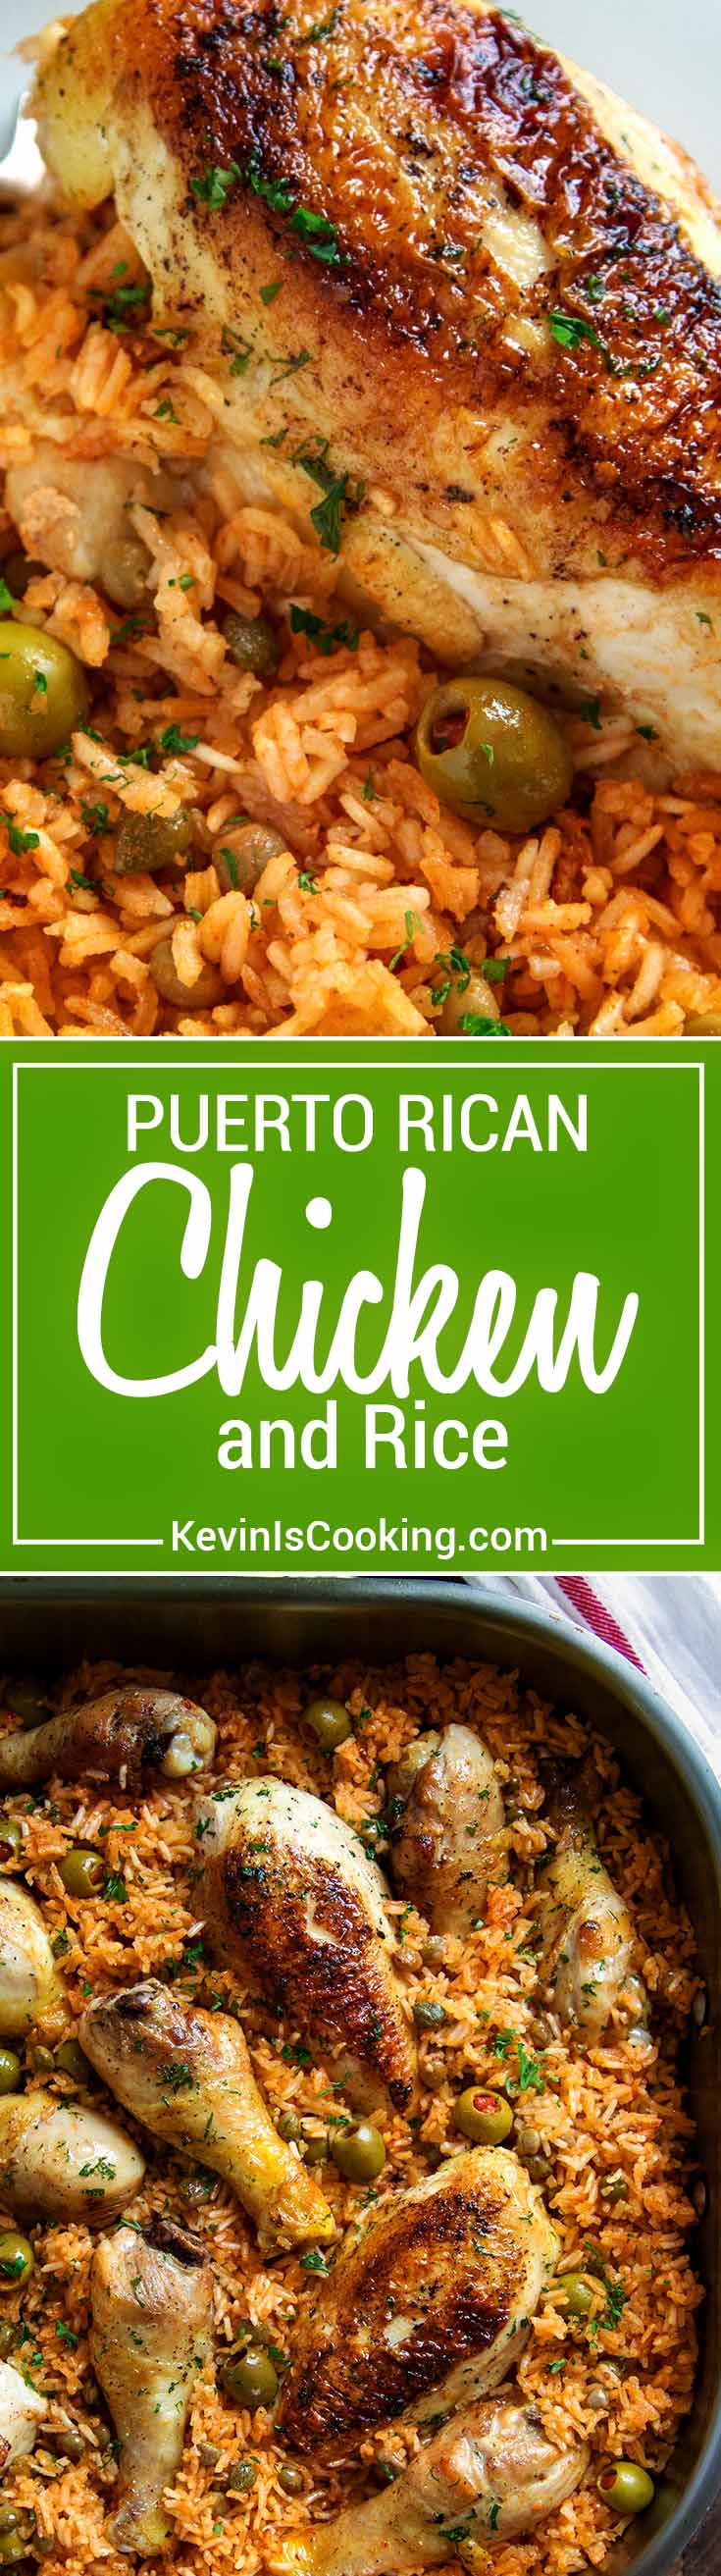 Puerto Rican Chicken and Rice is a Latin classic and packed with flavor, not heat. Browned chicken simmers in rice, flavorful sofrito, olives and capers. So Good!